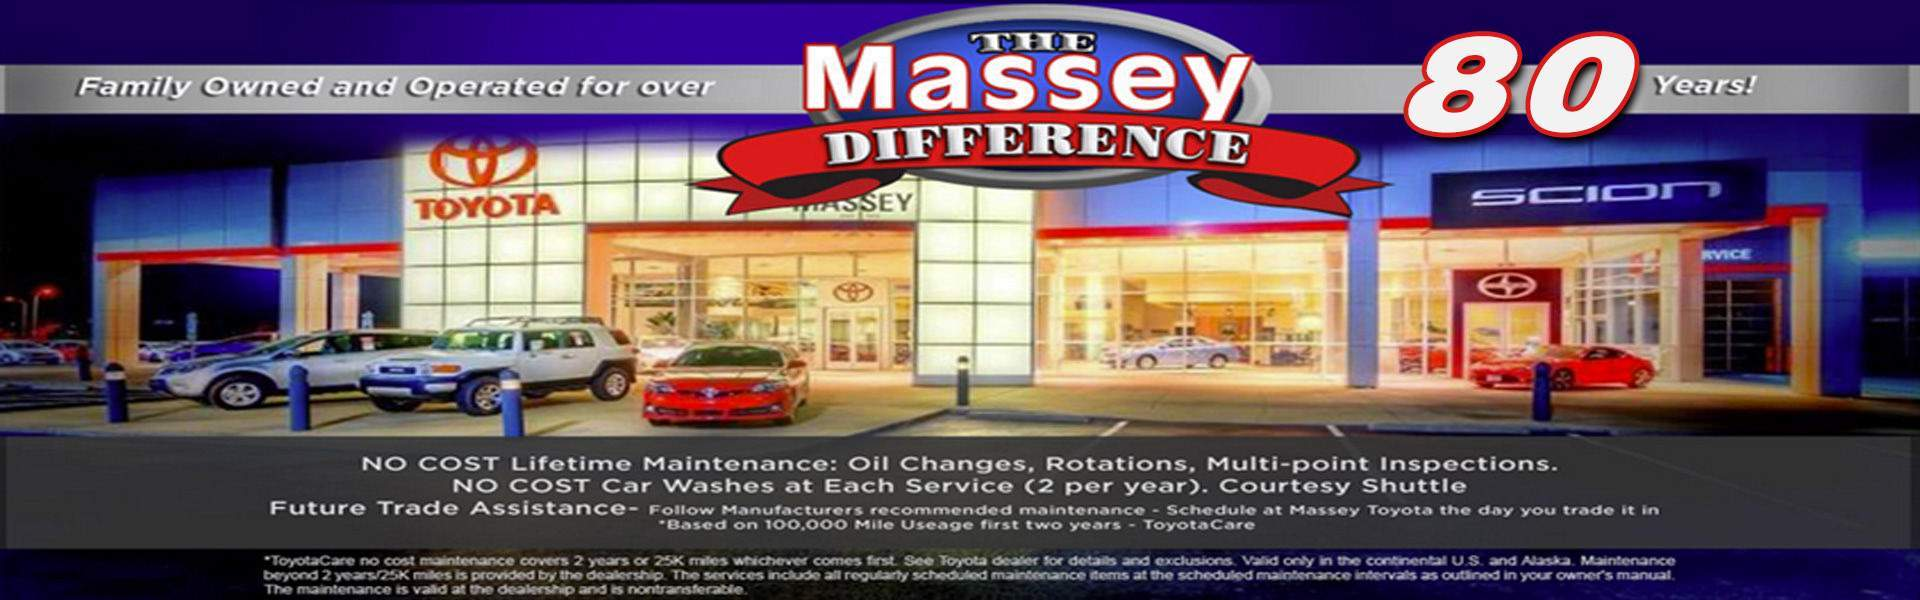 Massey Difference